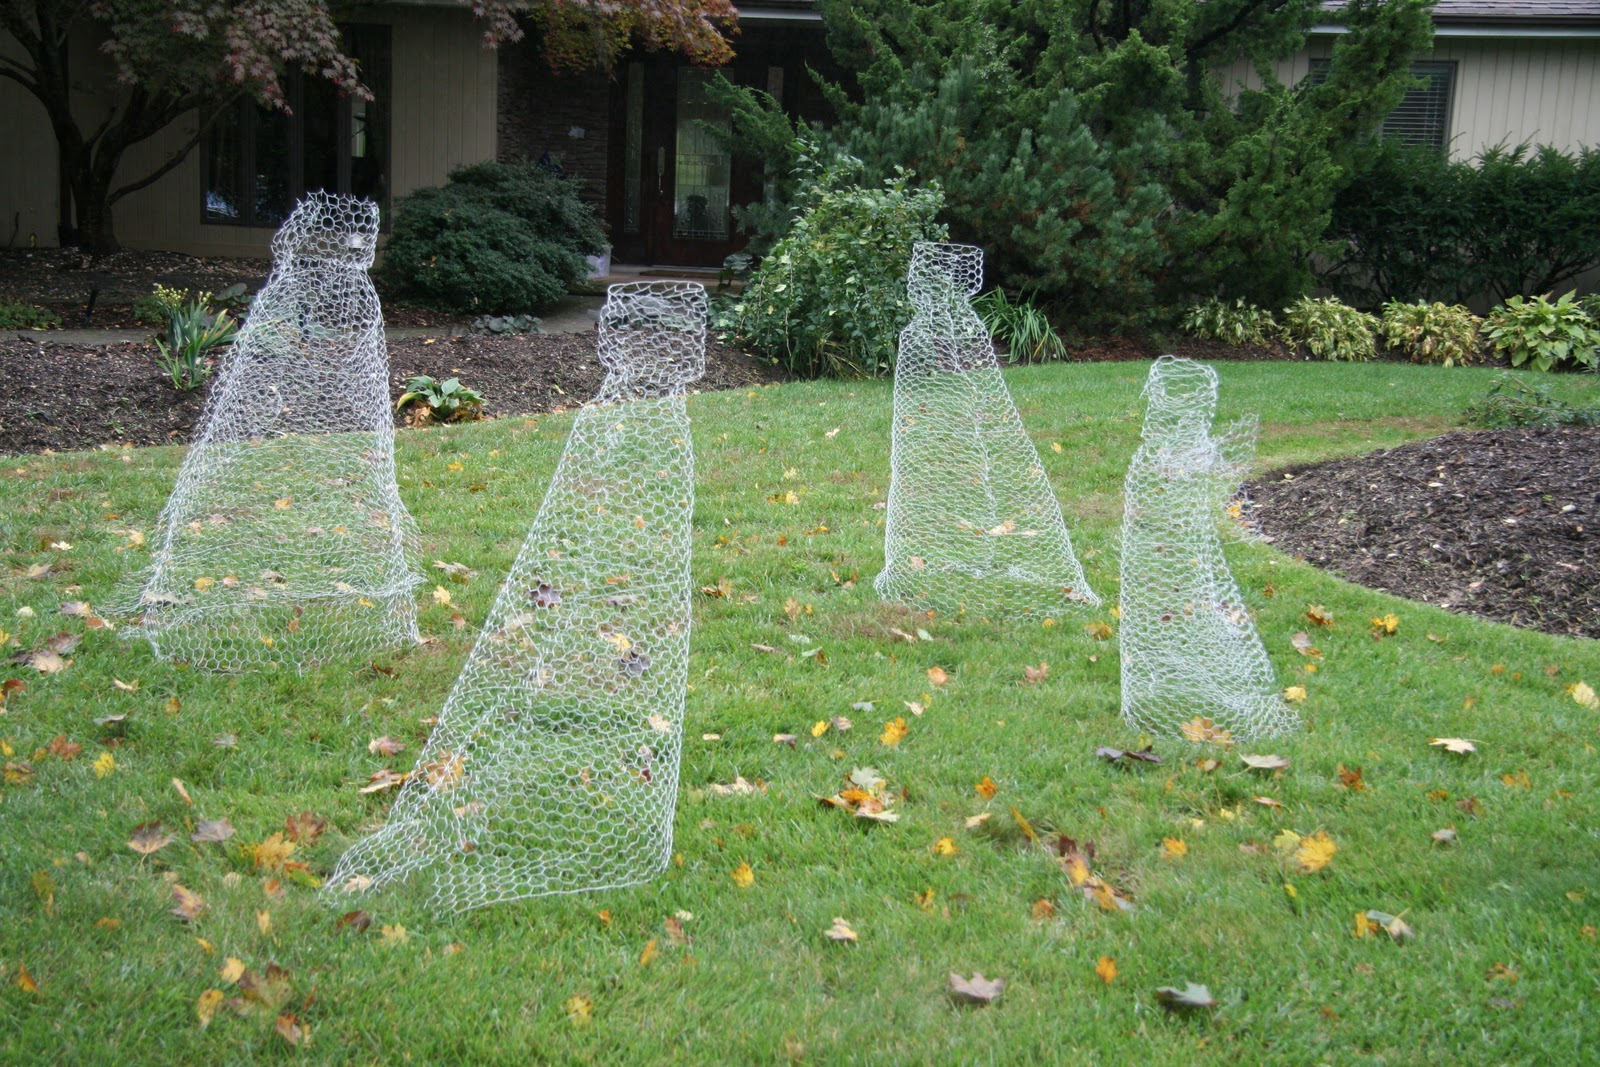 Outdoor halloween decorations 2014 - Using Old Chicken Wire To Create Ghostly Dresses Isn T Just Creative It S Also